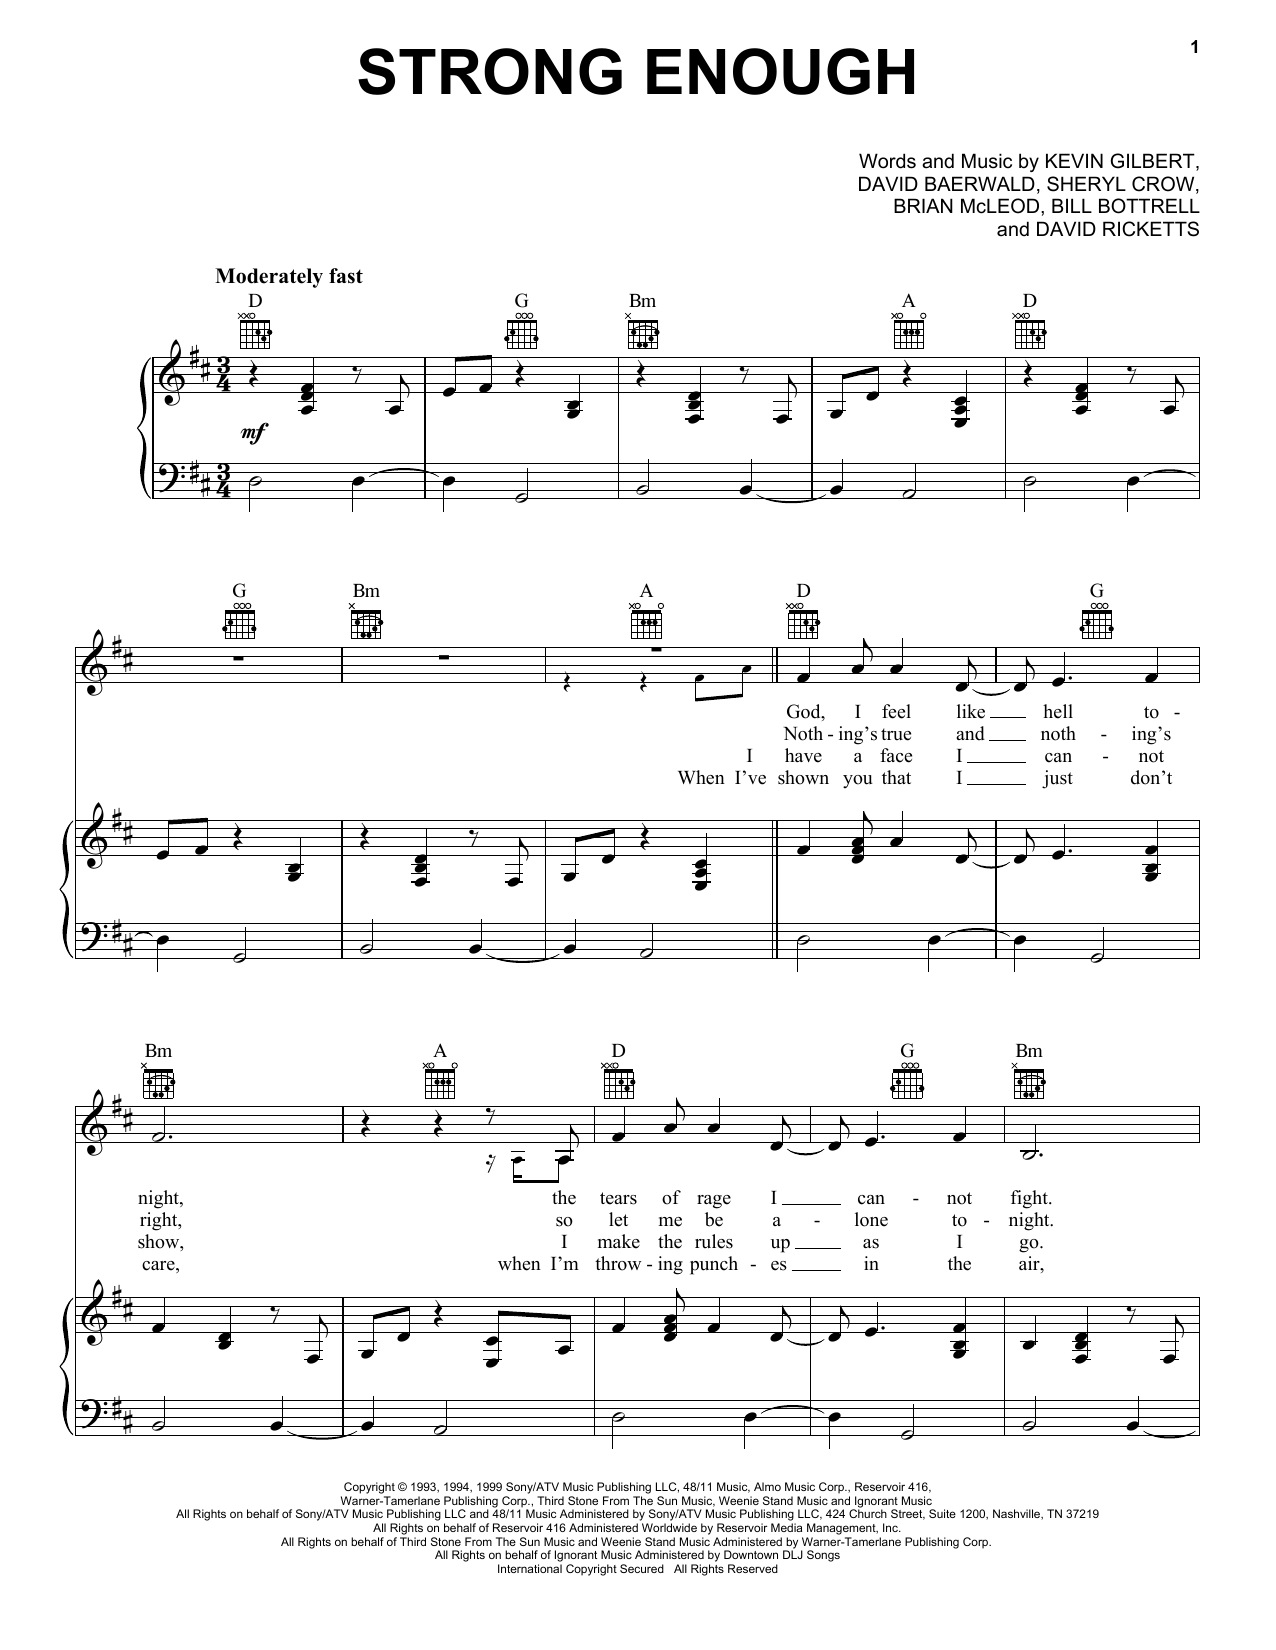 Sheryl Crow - Strong Enough (Chords) - Ultimate Guitar Archive